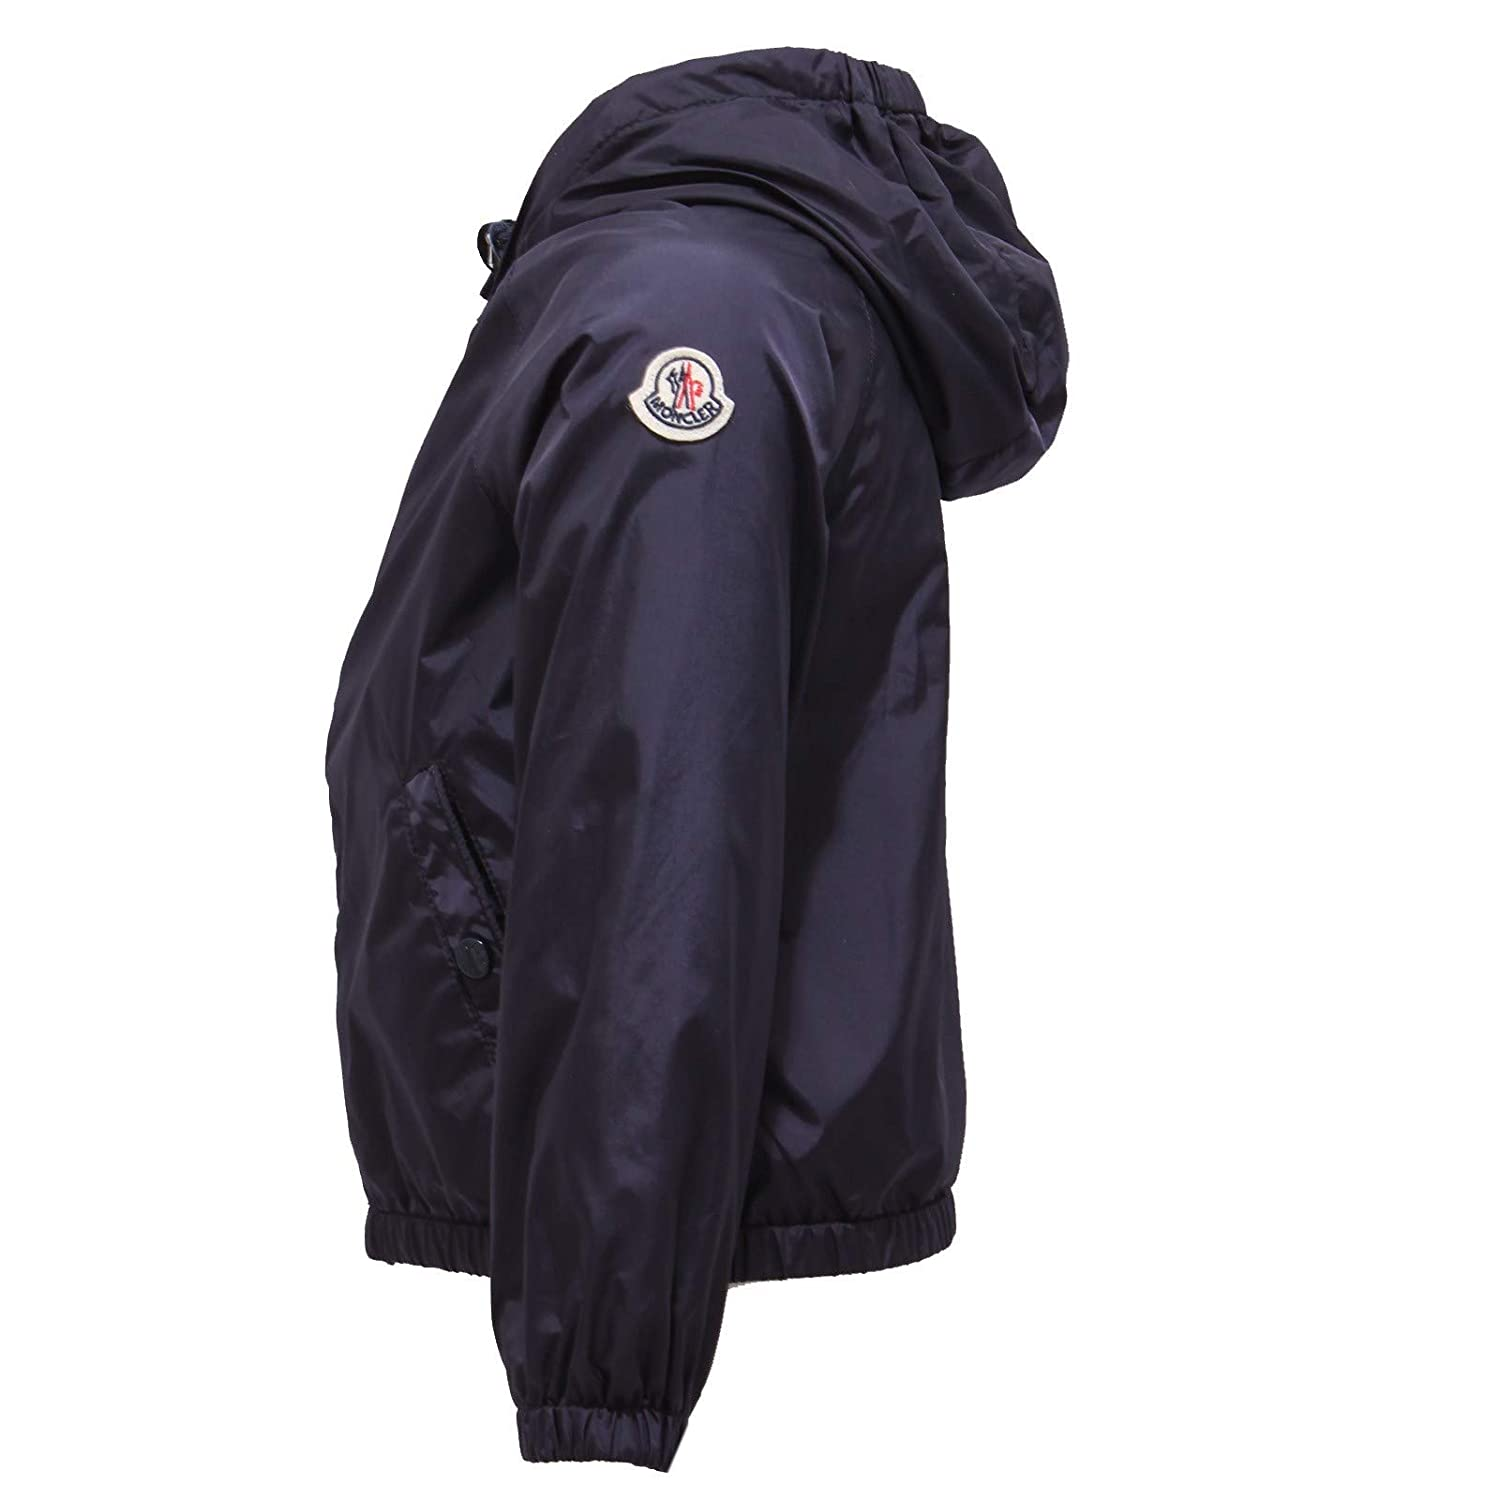 MONCLER 1078Y Giacca antivento Bimbo Boy EUSTACHE Blue Wind Stopper Jacket [2 Years]: Amazon.es: Ropa y accesorios